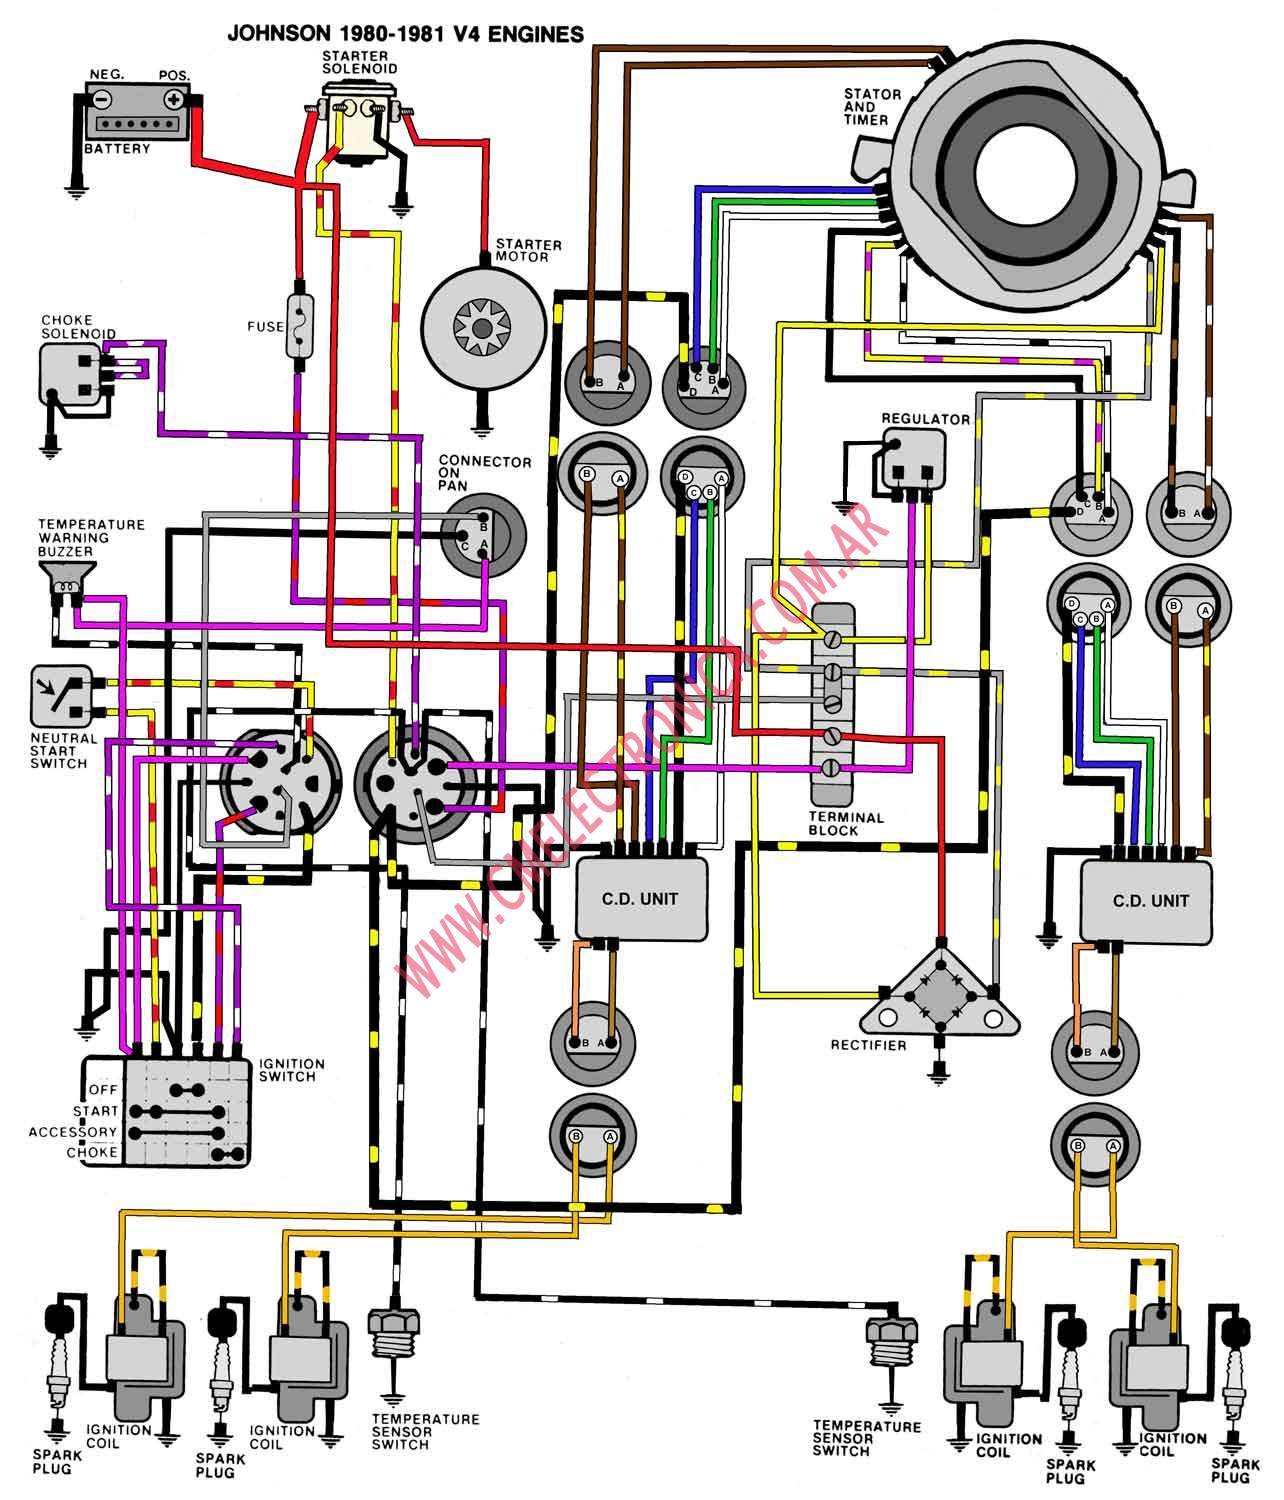 hight resolution of 1986 johnson tachometer wiring all wiring diagram1986 johnson tachometer wiring wiring diagram diesel tachometer wiring diagrams